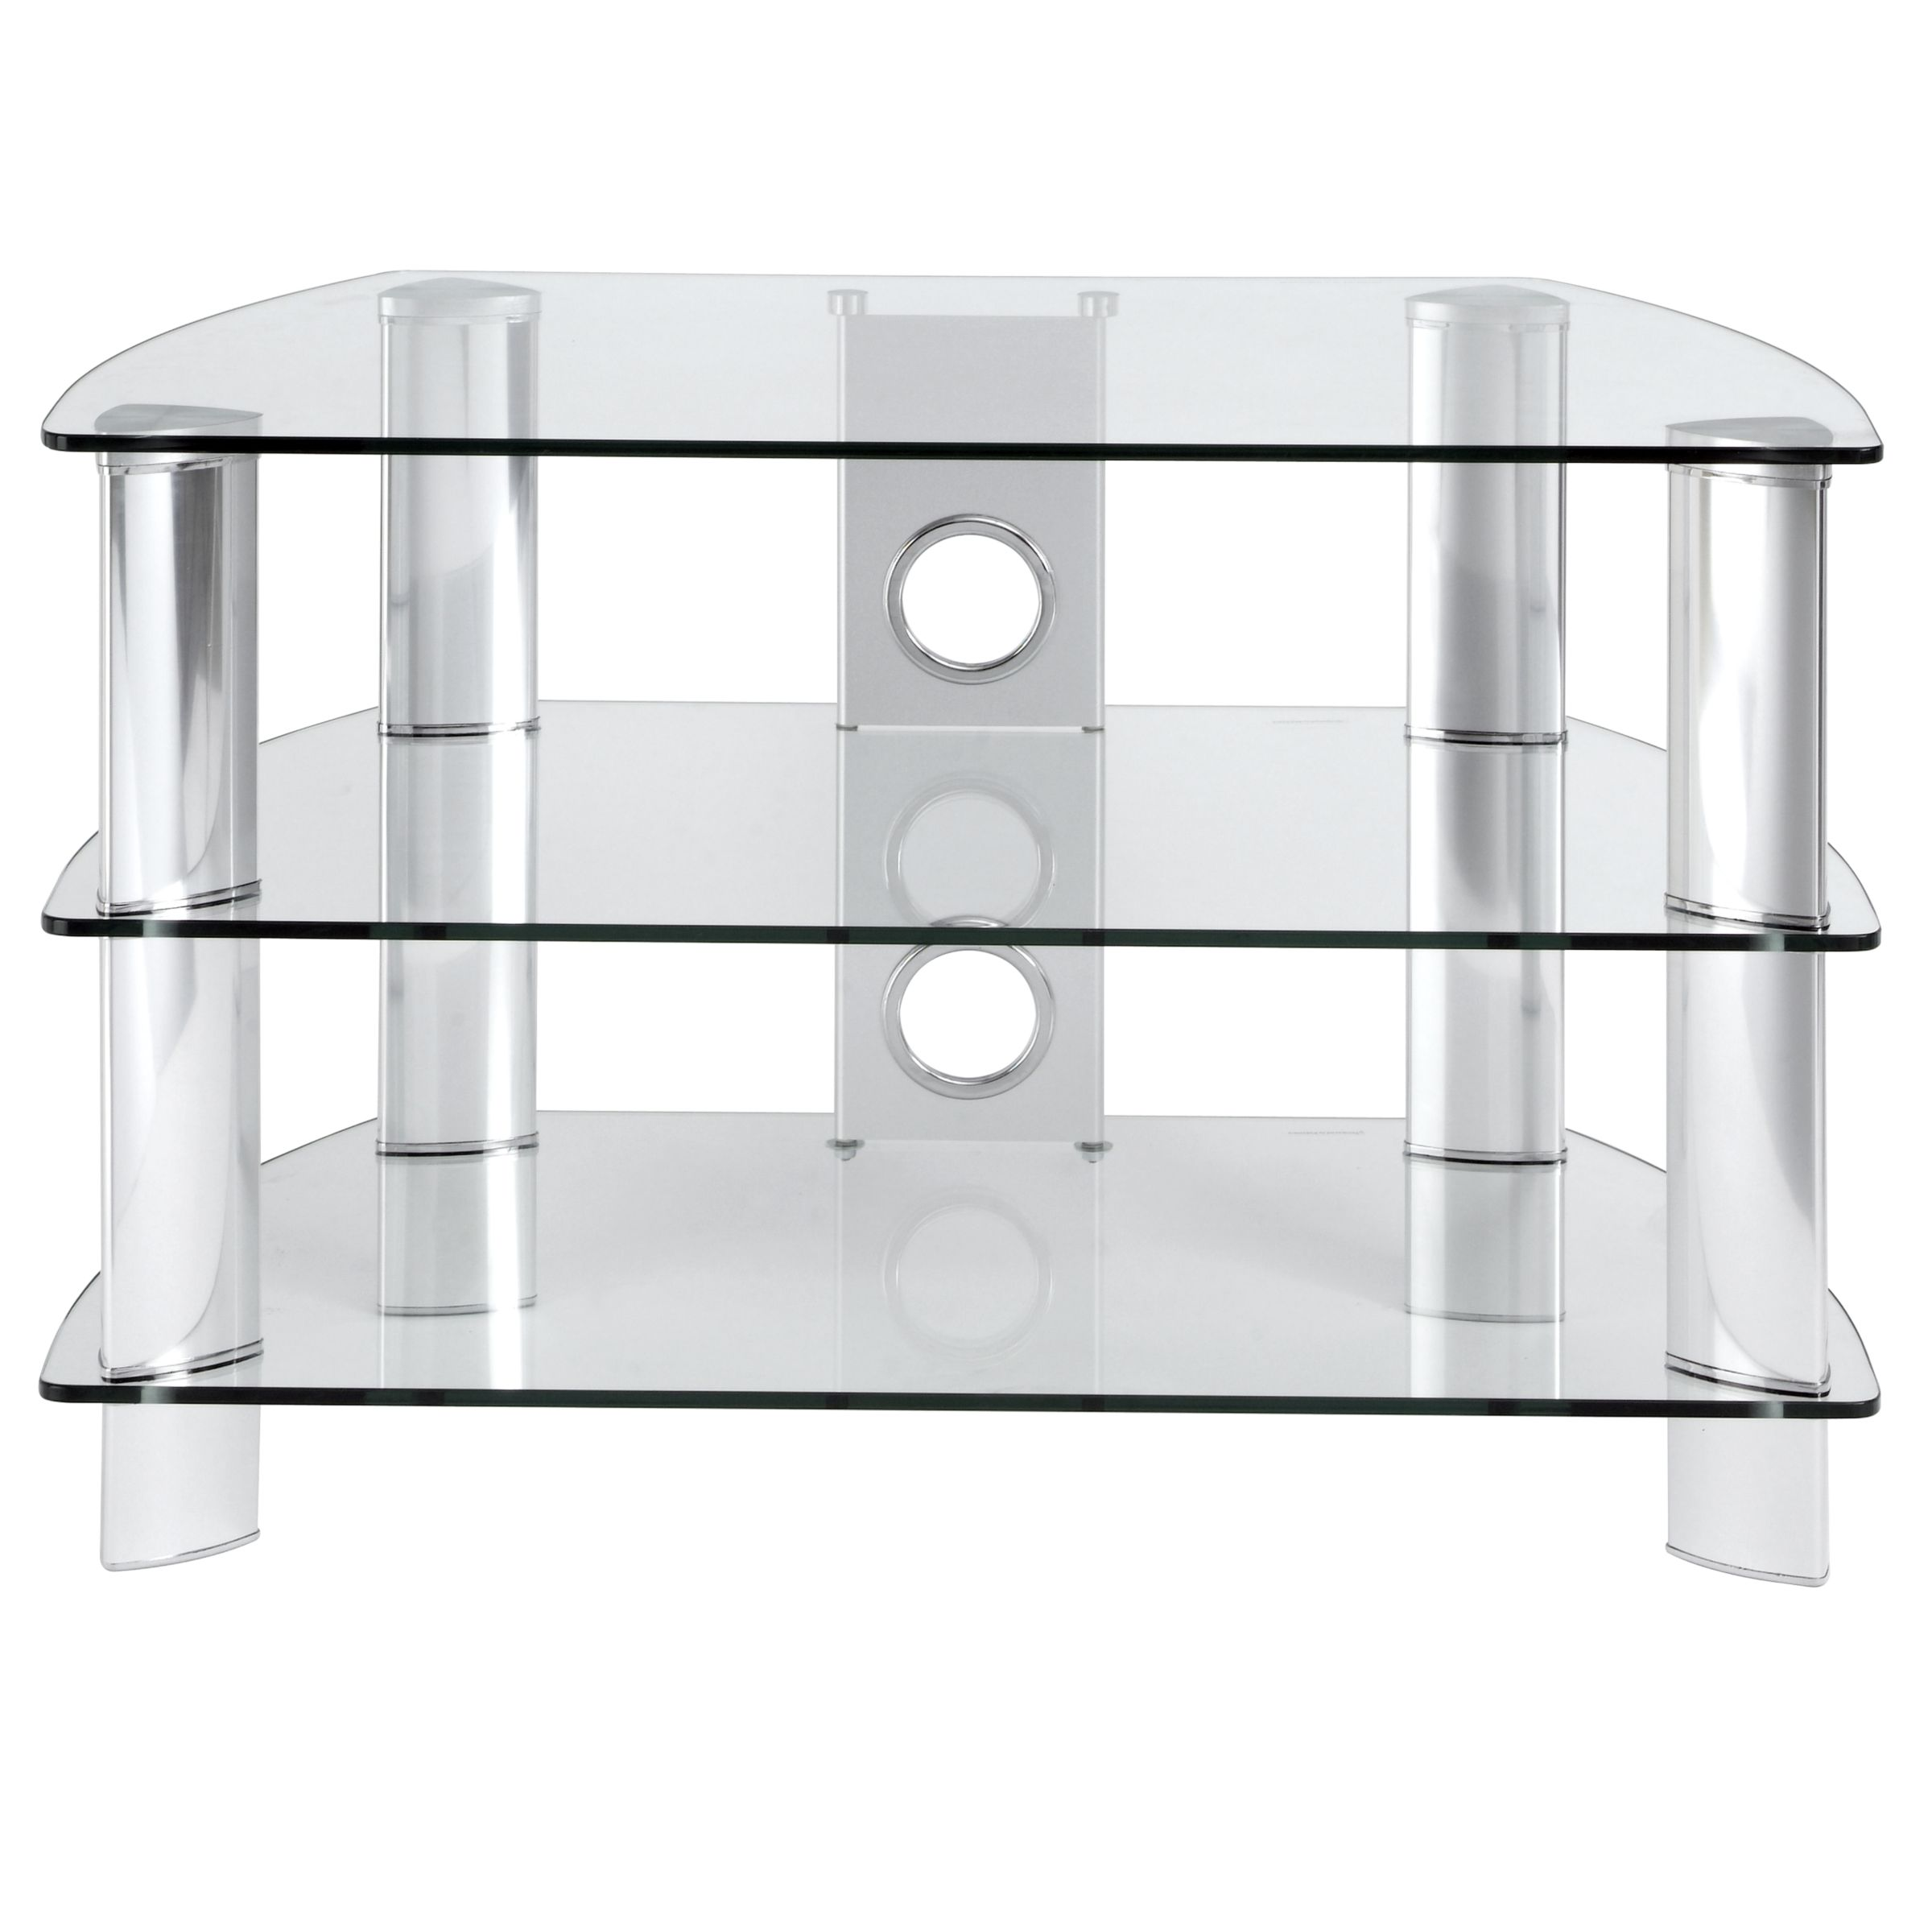 JL600/C10 Television Stand, Clear Glass